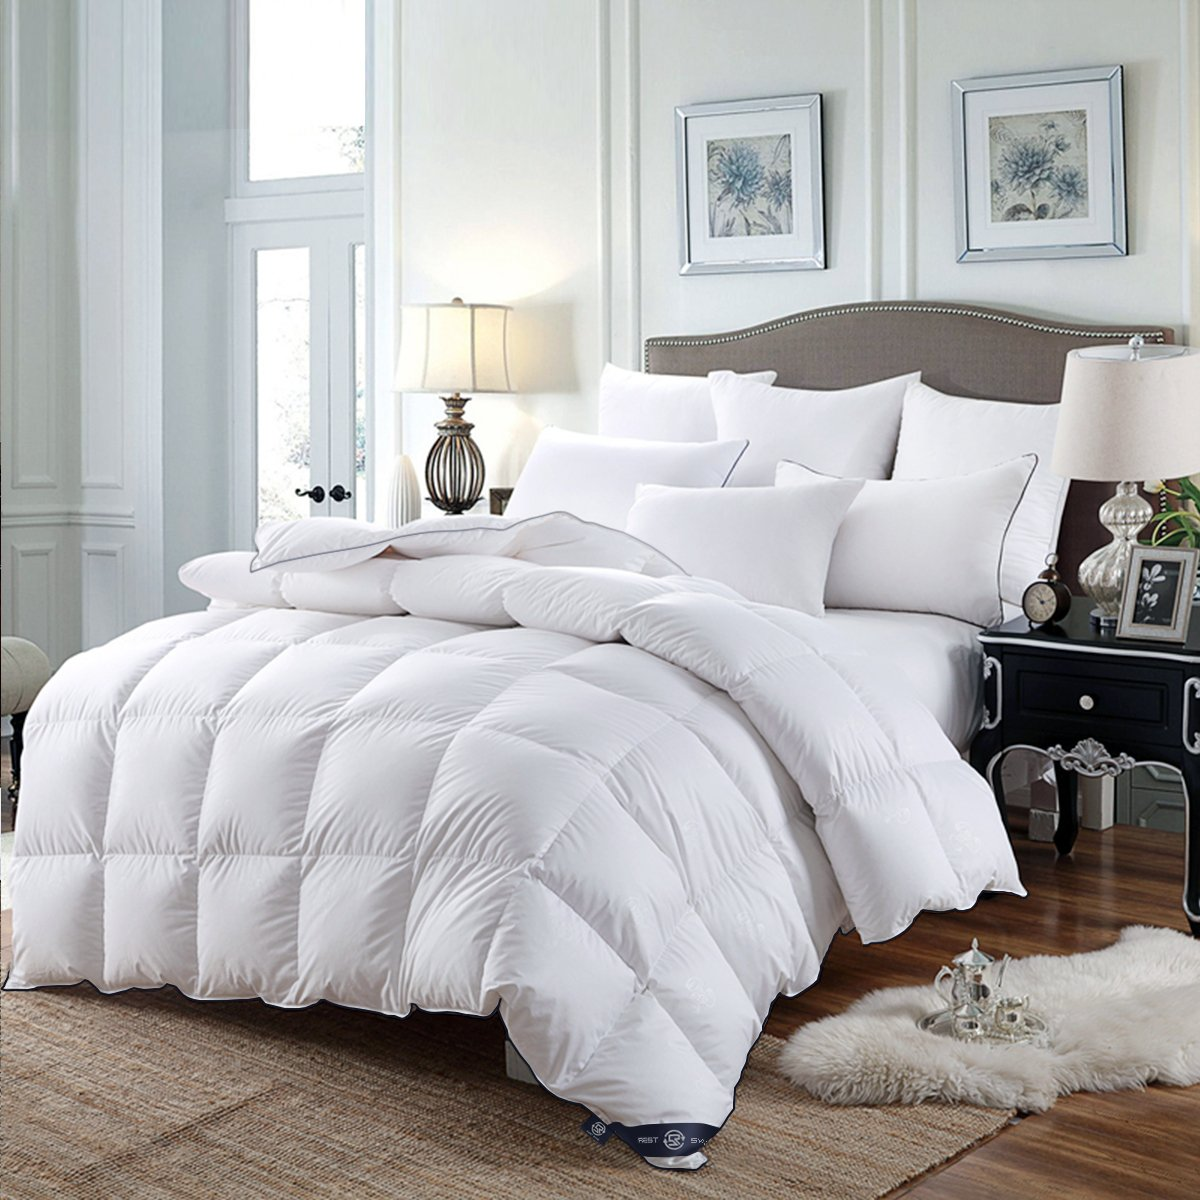 LUXURIOUS King Size All Seasons White DOWN Comforter, 300 Thread Count 100% Egyptian Cotton 600FP Duvet Insert by REST SYNC, White Solid